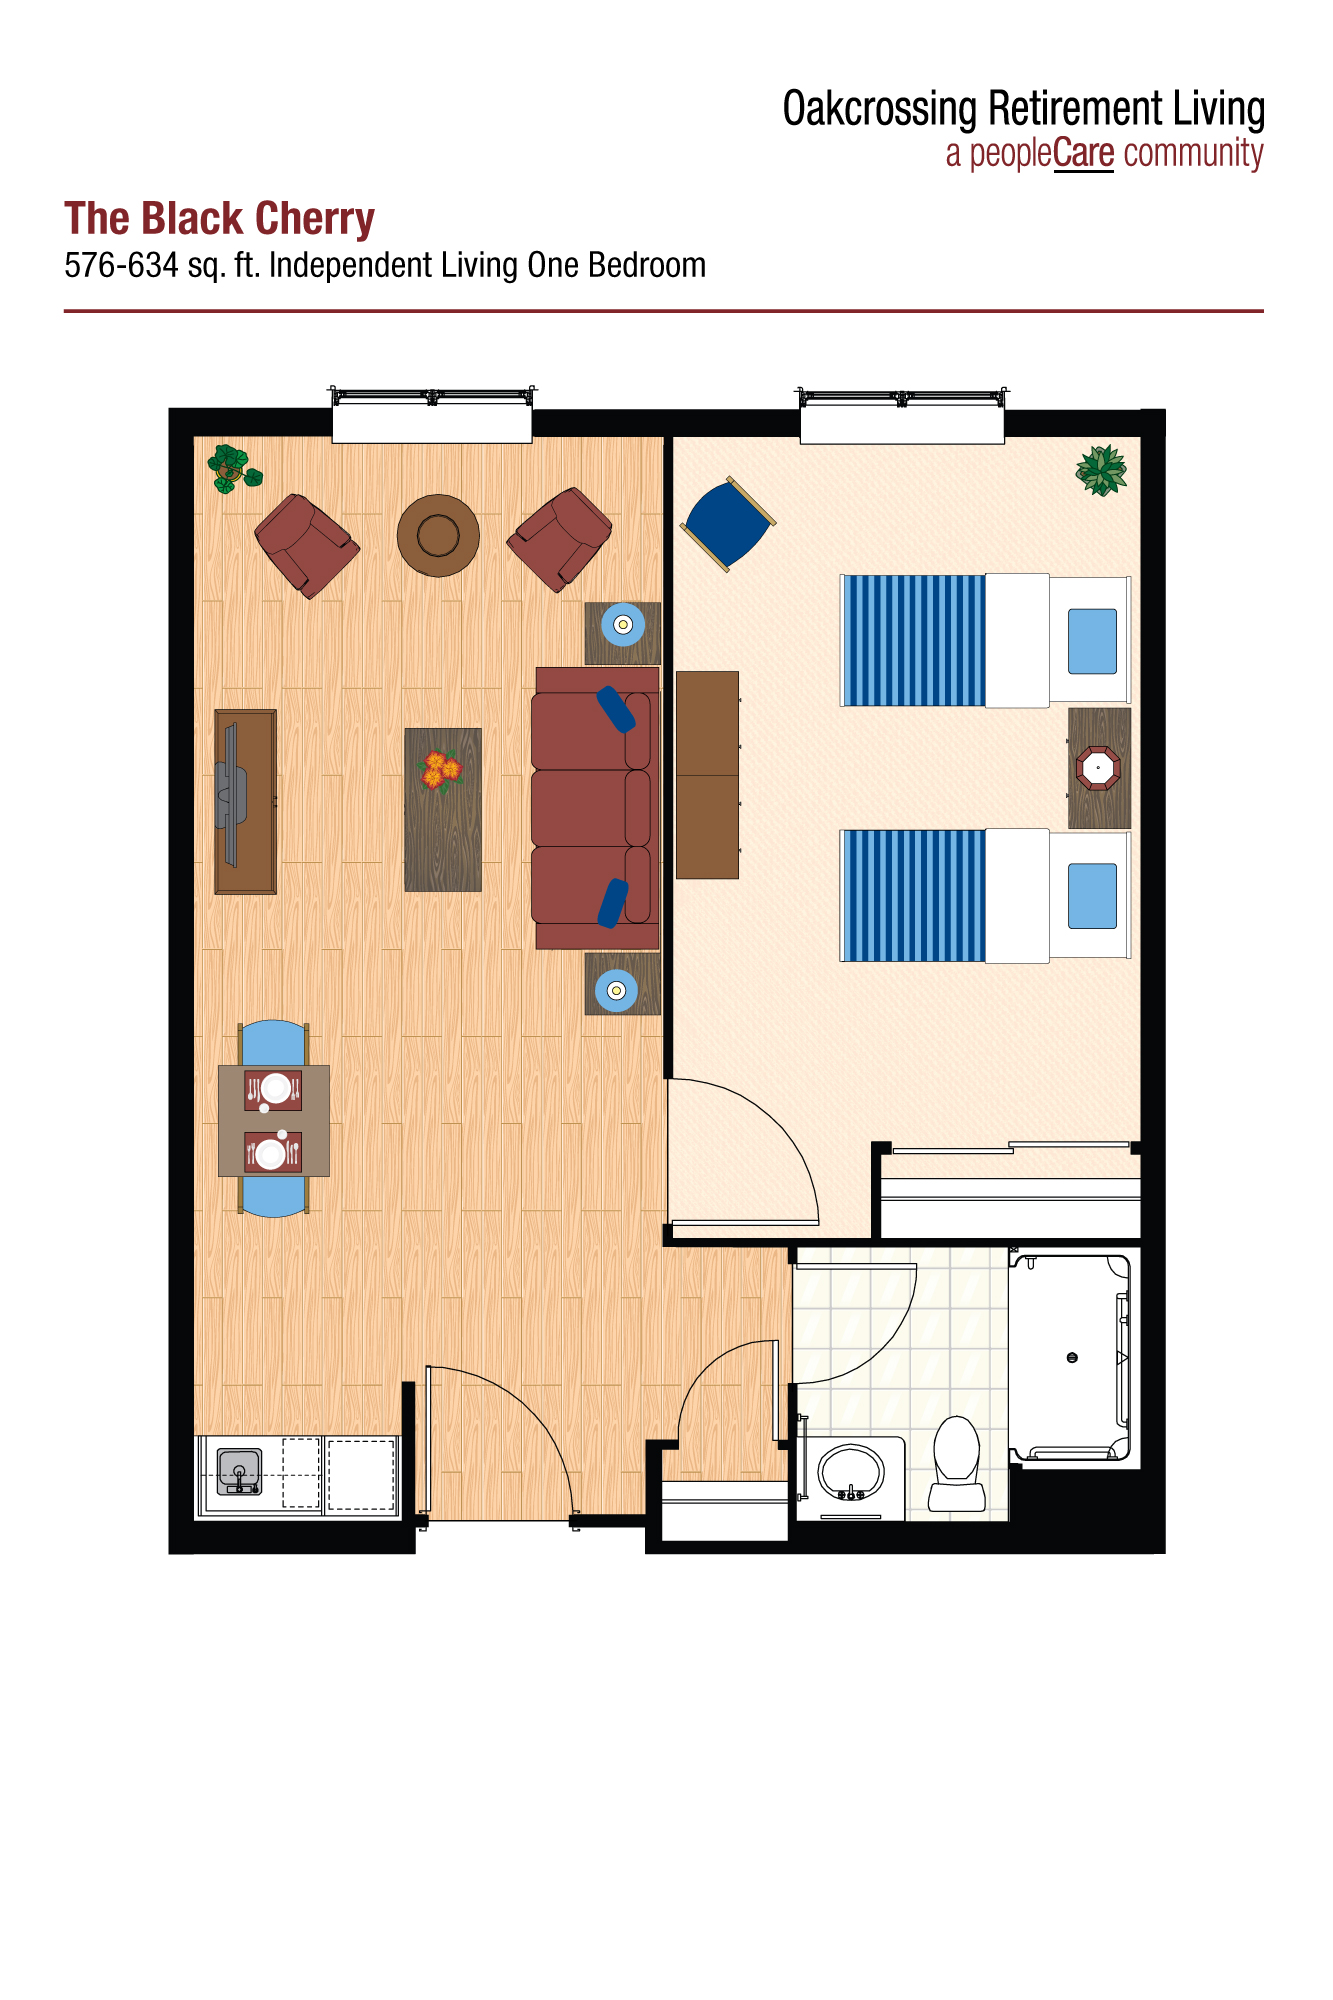 Oakcrossing_BlackCherry_floorplan2017